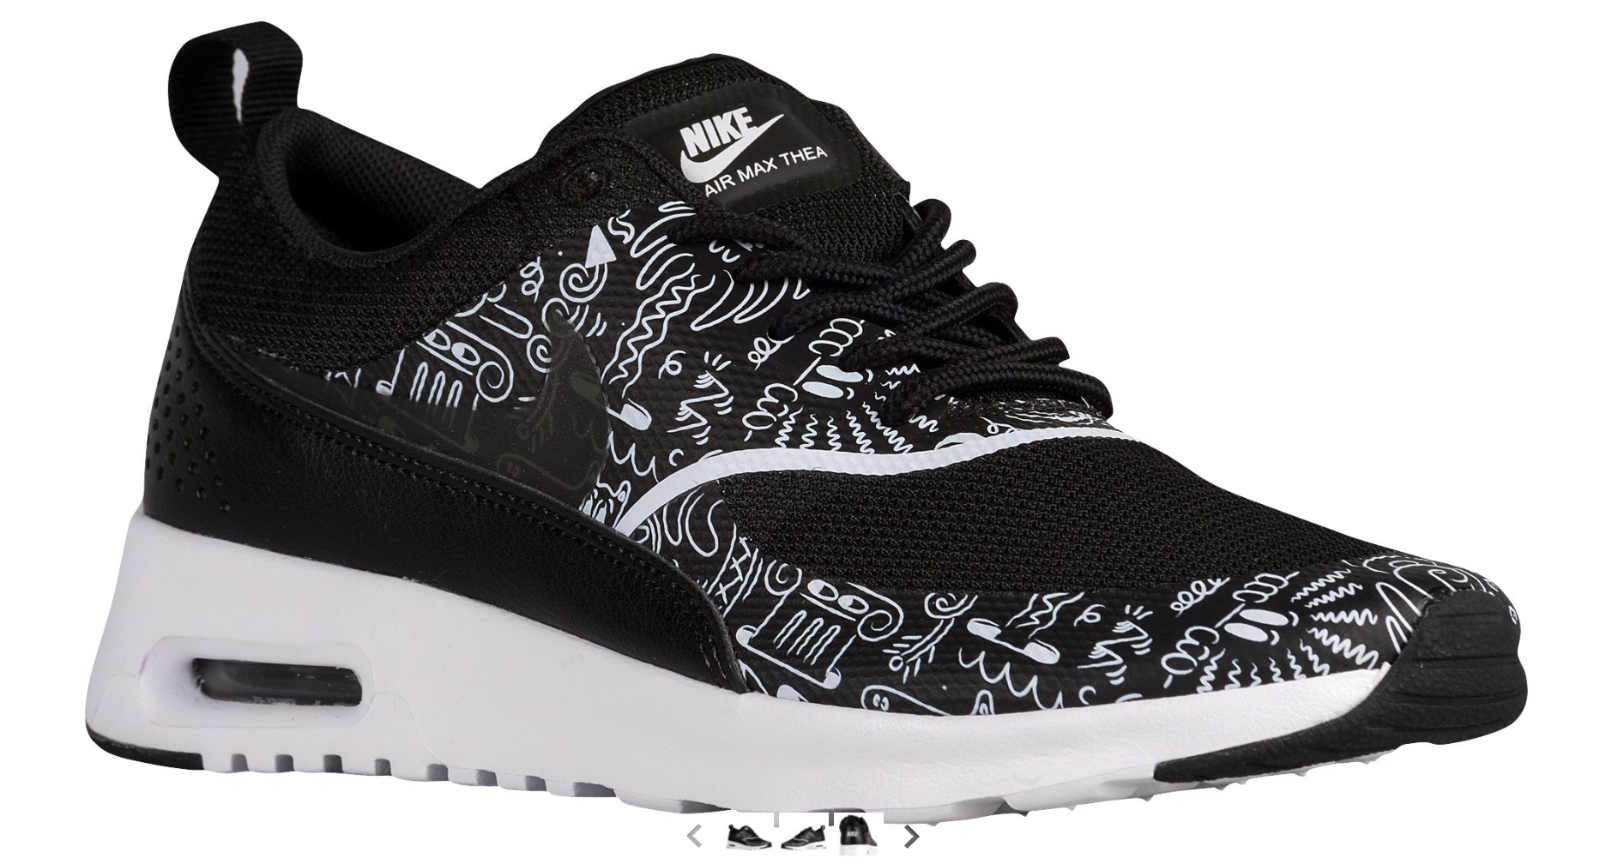 NEW Femme Nike Air Max Thea Chaussures Taille: 5.5 Color: Noir